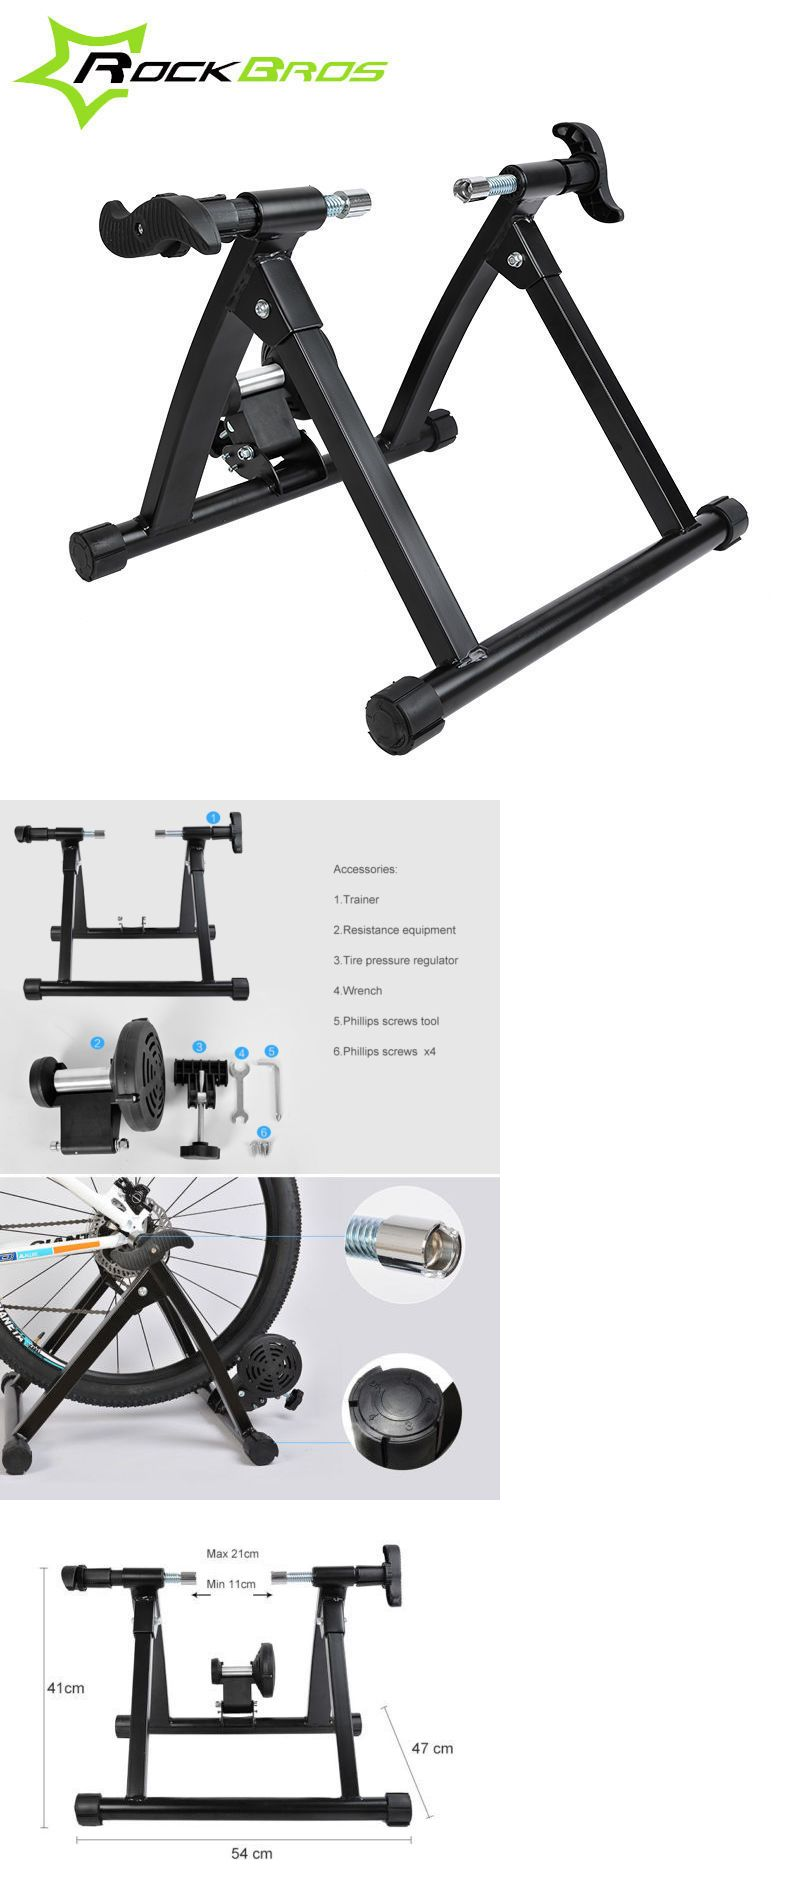 Trainers And Rollers 36141 Rockbros Indoor Cycling Bicycle